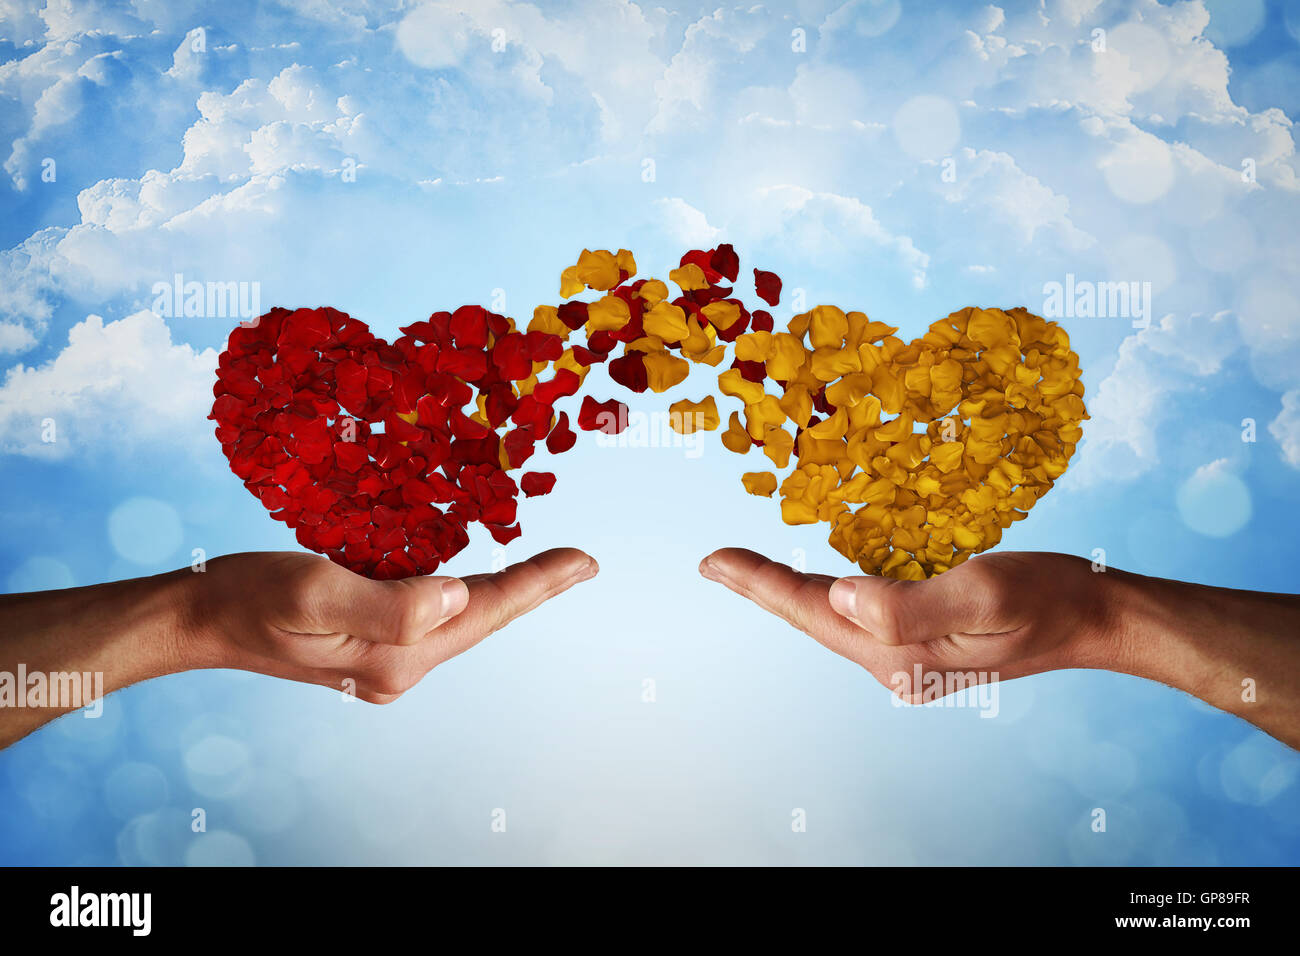 Two hands holding rose petal hearts. Romantic relationship concept. Attachment and love symbol, giving and exchange - Stock Image